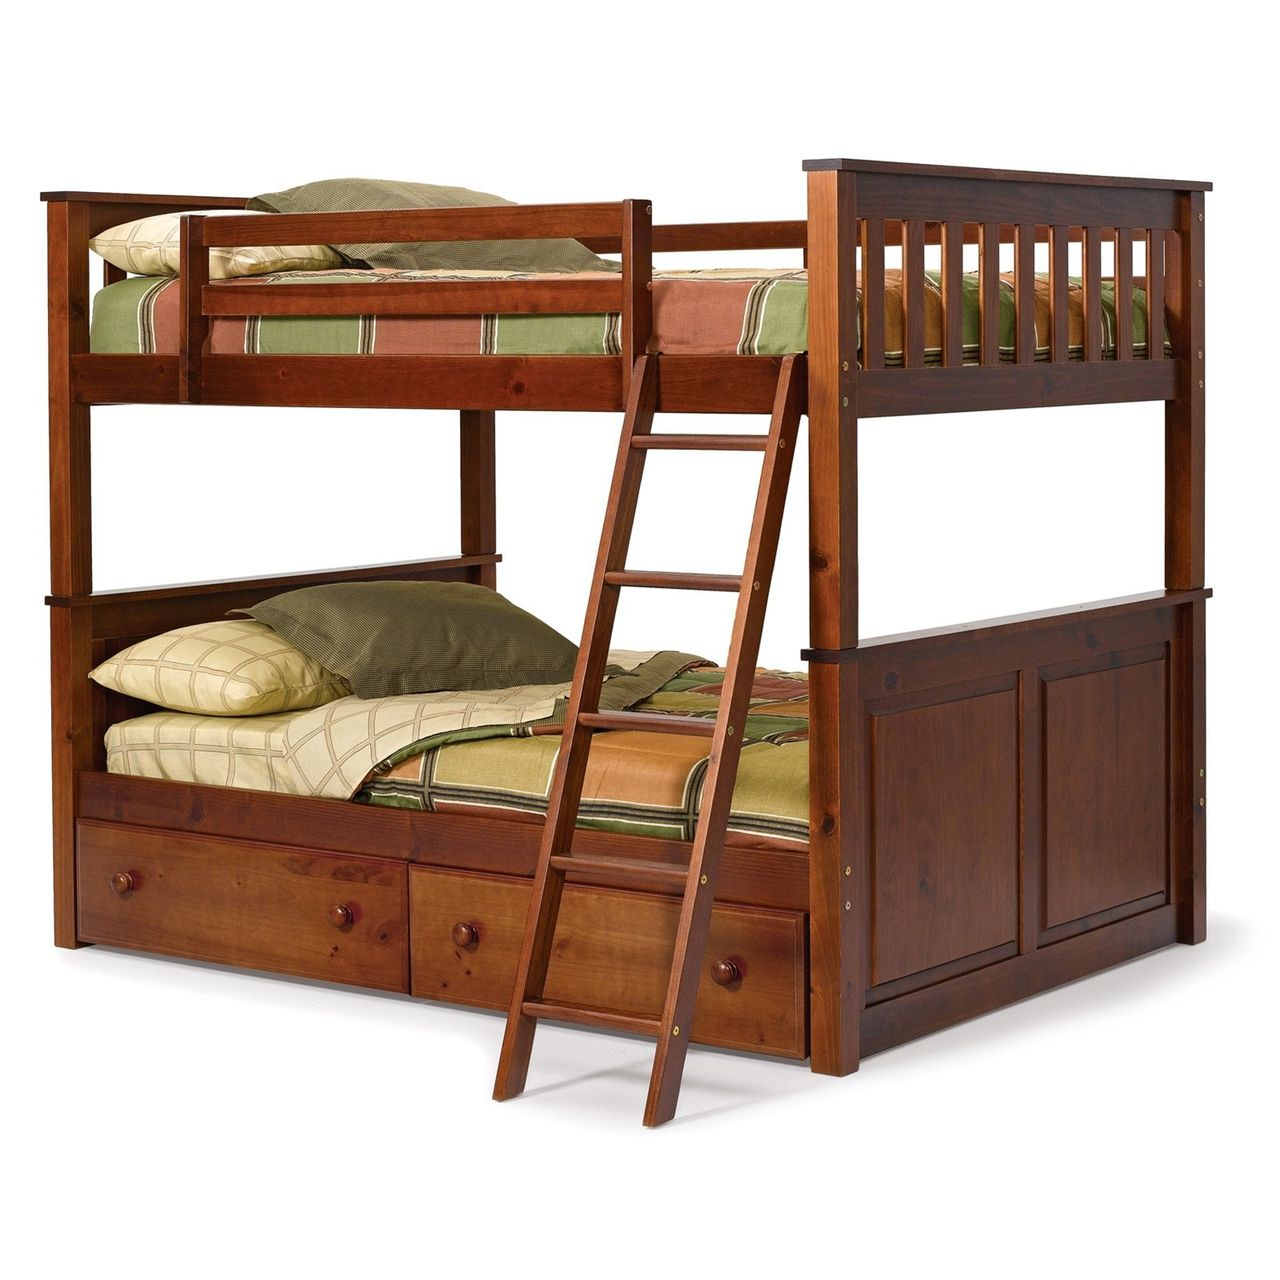 Full Over Full Bunk Bed In Solid Hardwood With Chocolate Brown Finish Cool Bunk Beds Kids Bunk Beds Full Size Bunk Beds Full size wooden bunk beds